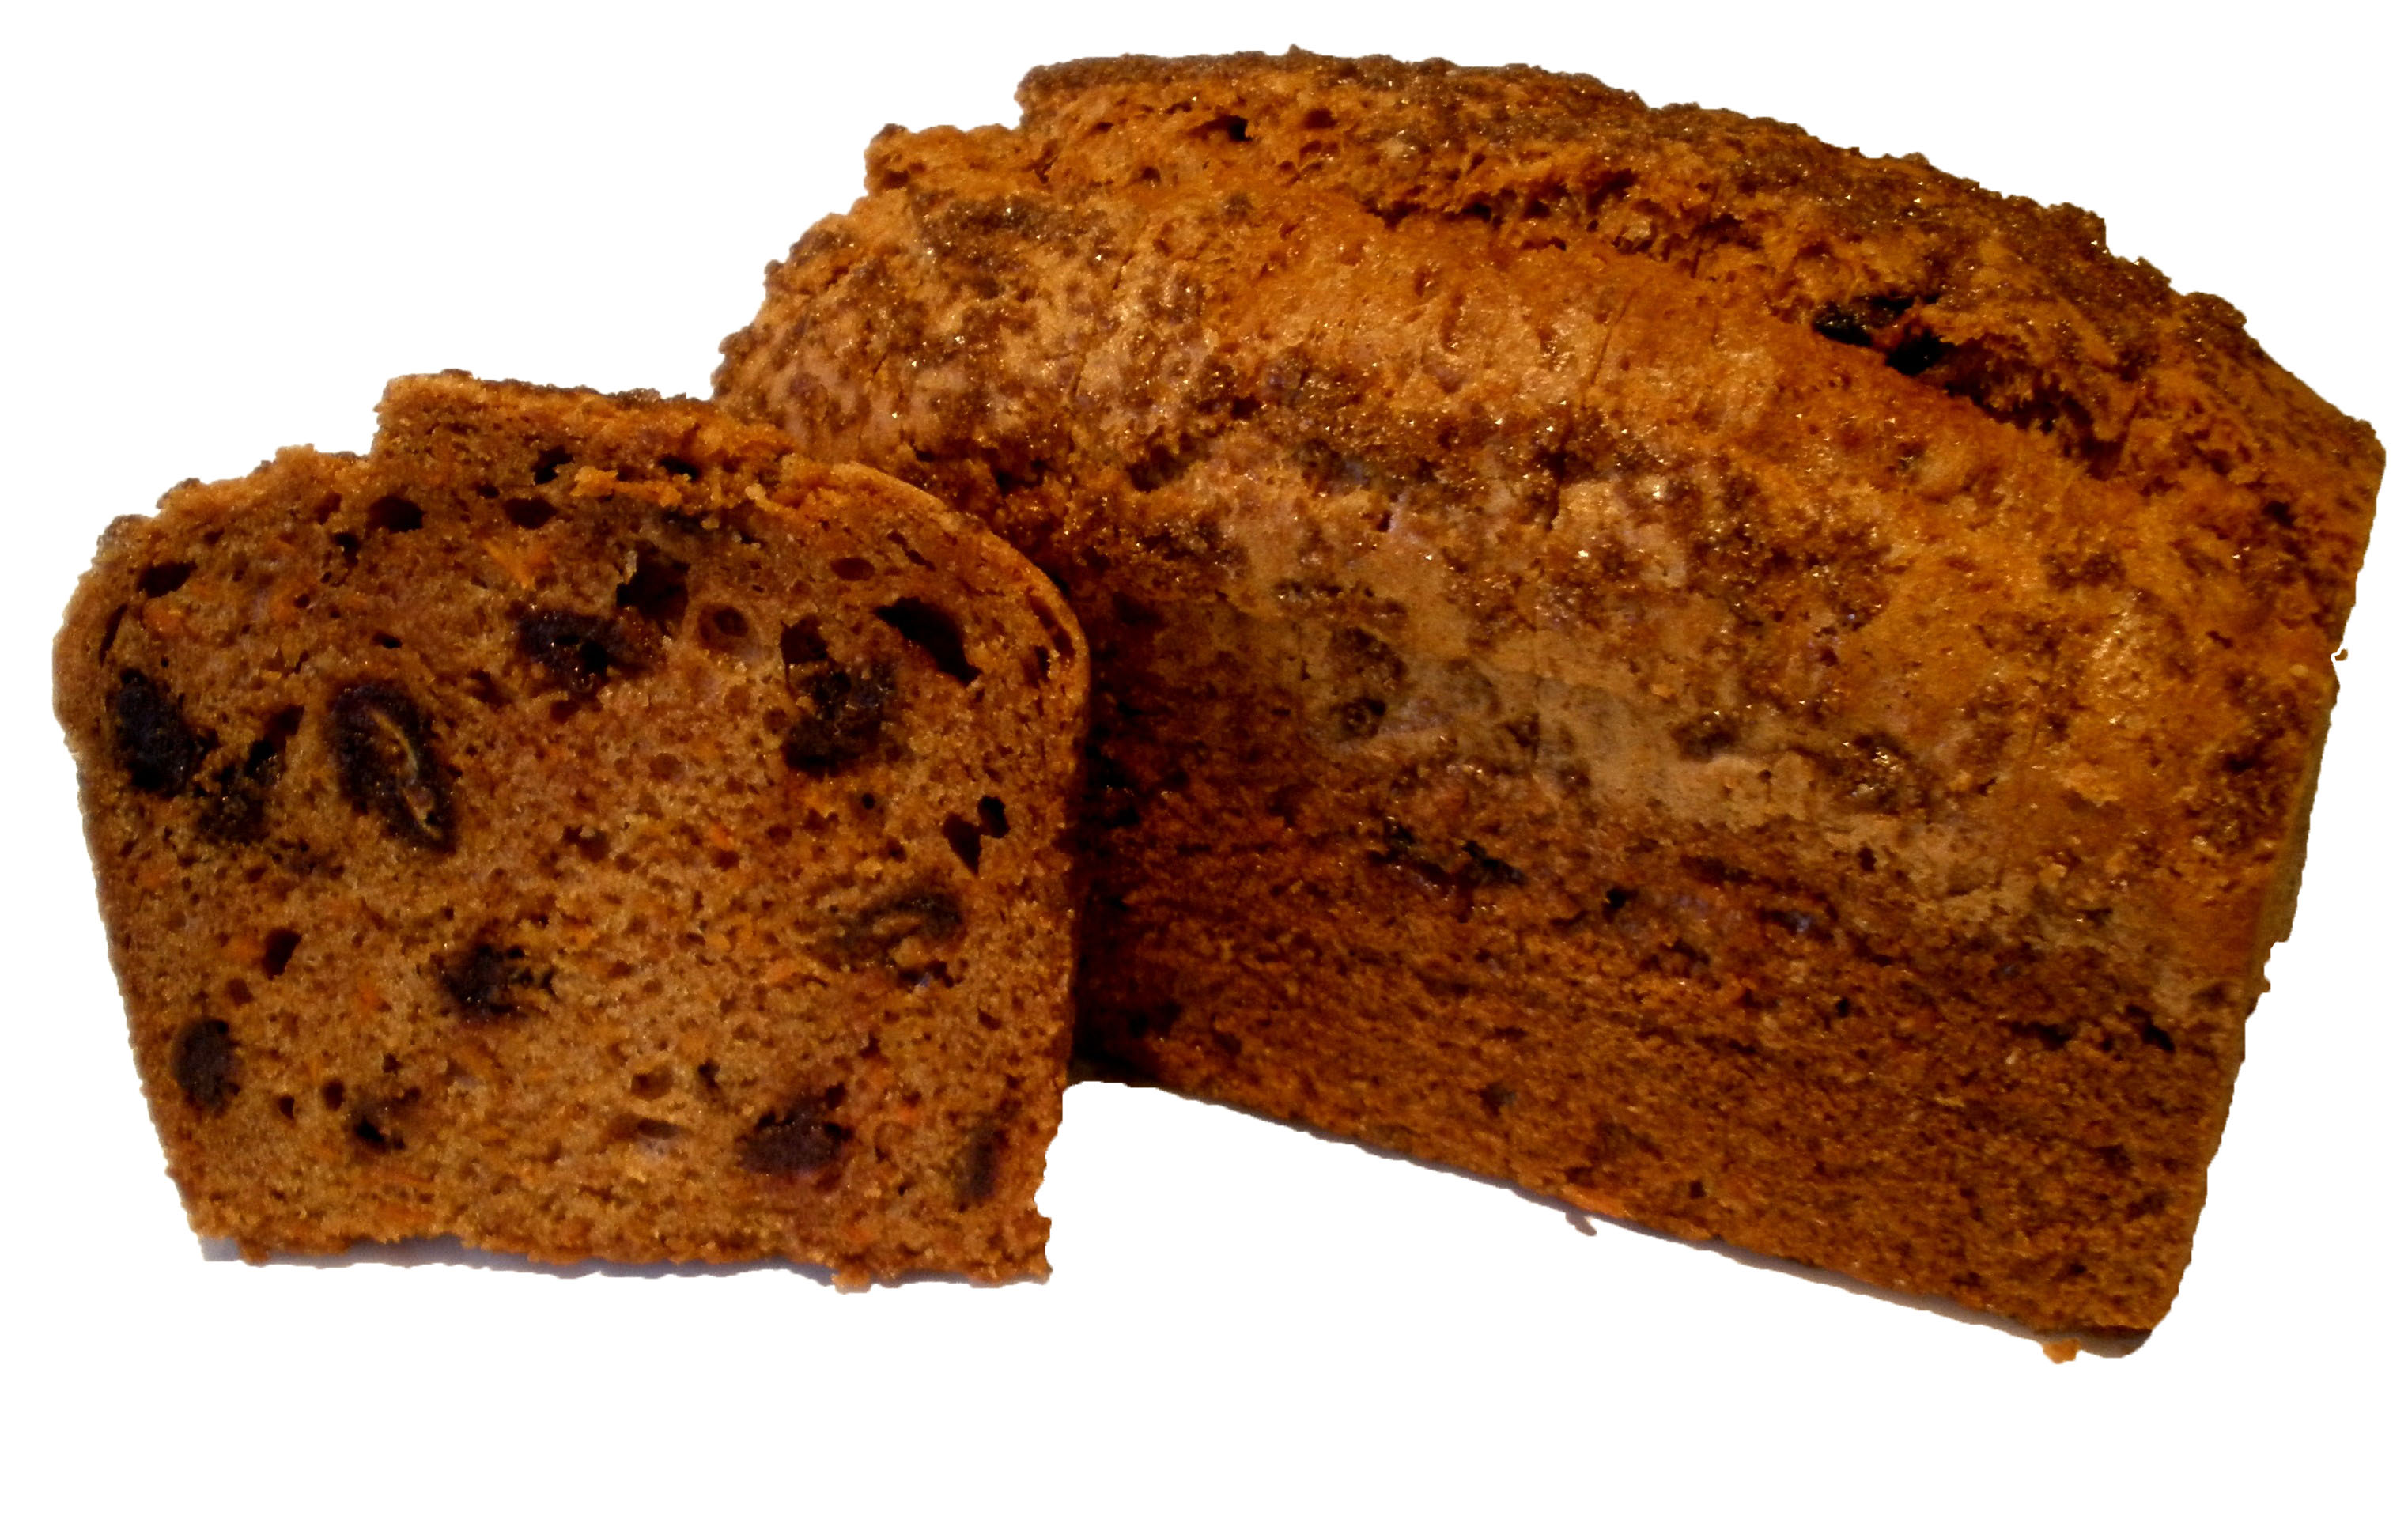 https://0901.nccdn.net/4_2/000/000/05c/c64/Carrot-Date-Loaf.jpg